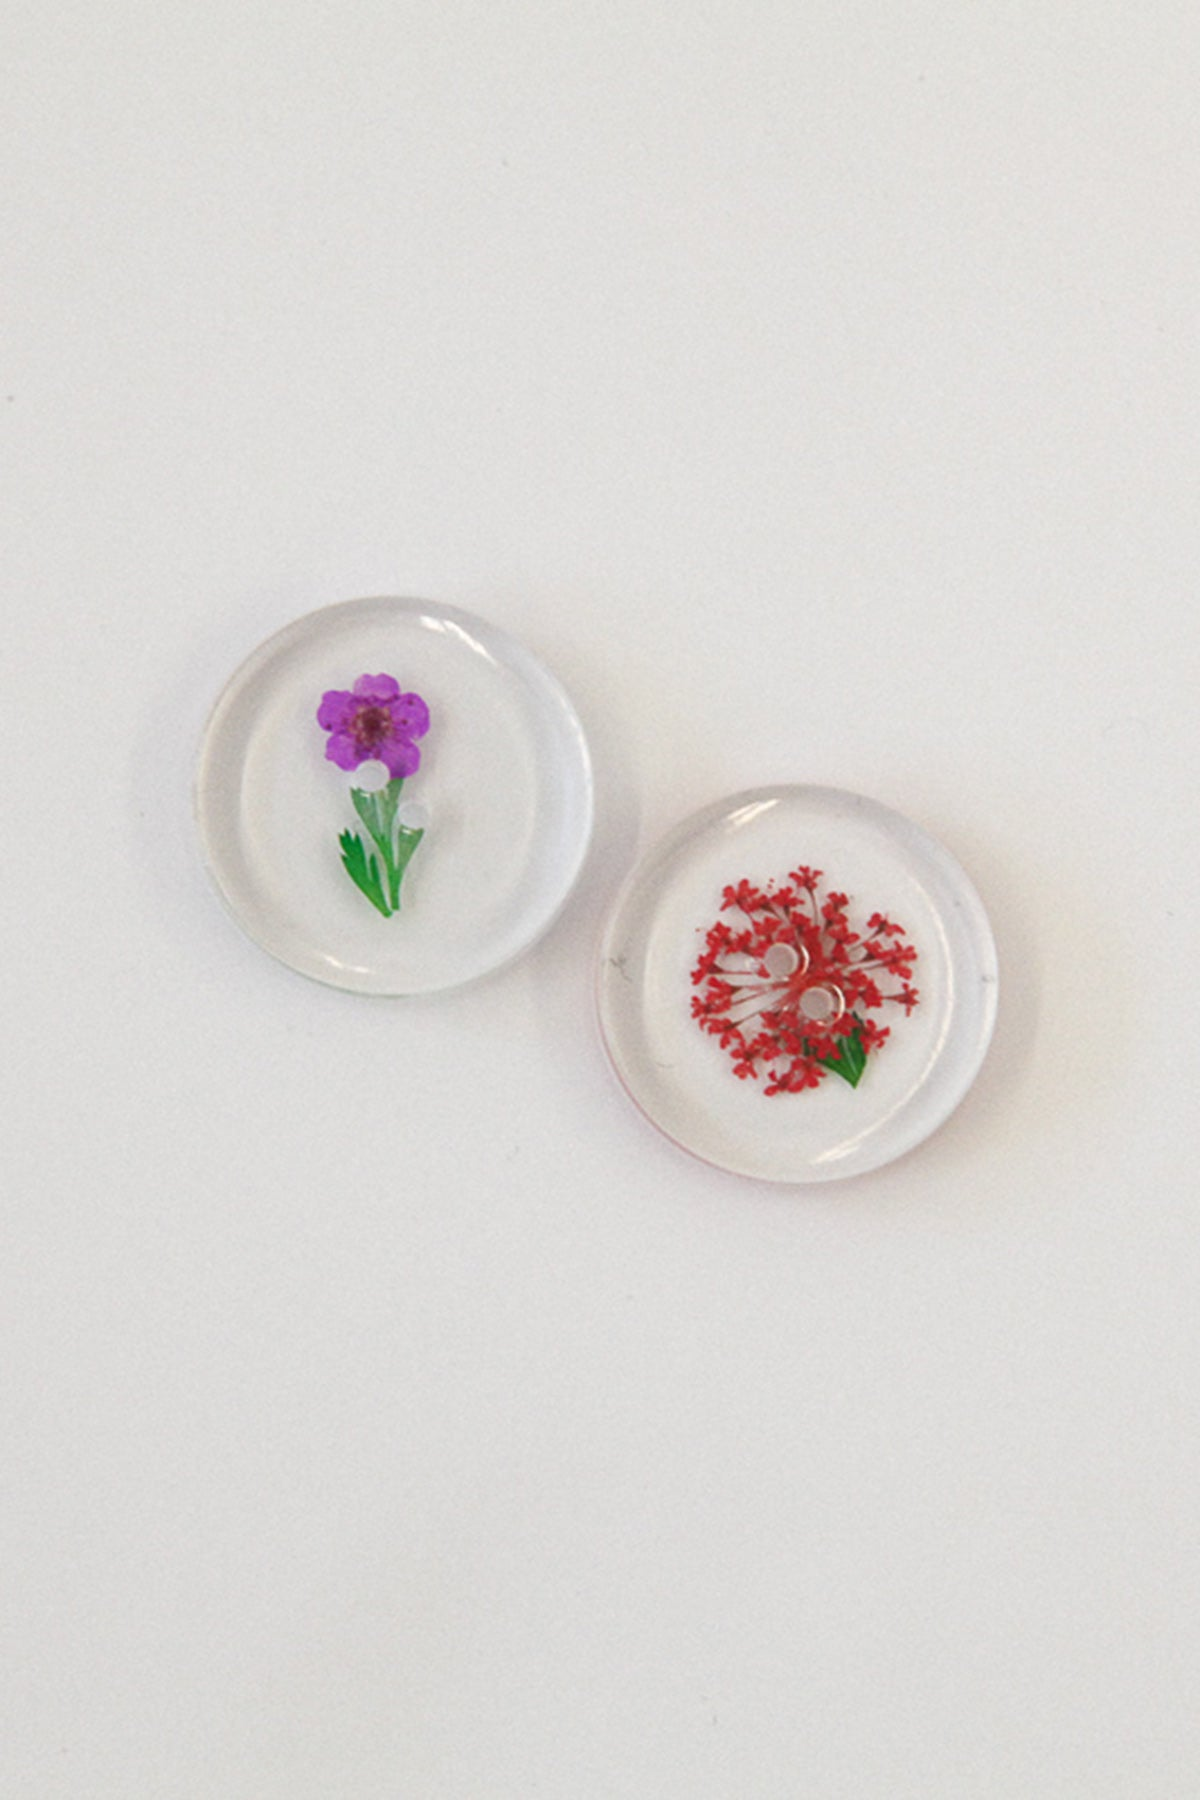 Flower Pressed Lucite Buttons - Round